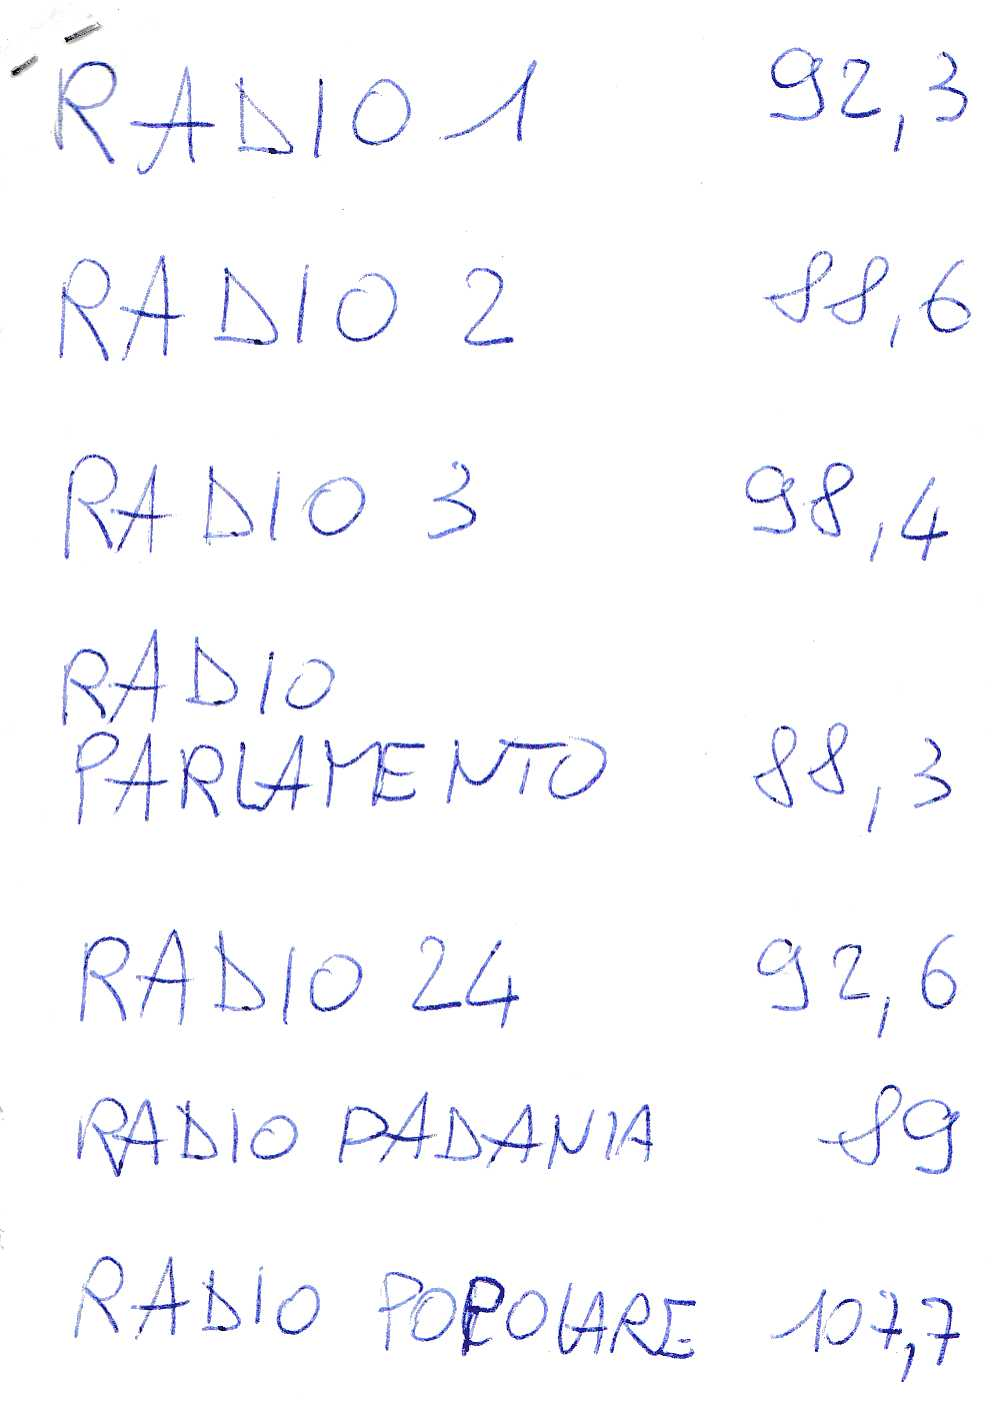 radio-frequenze4108